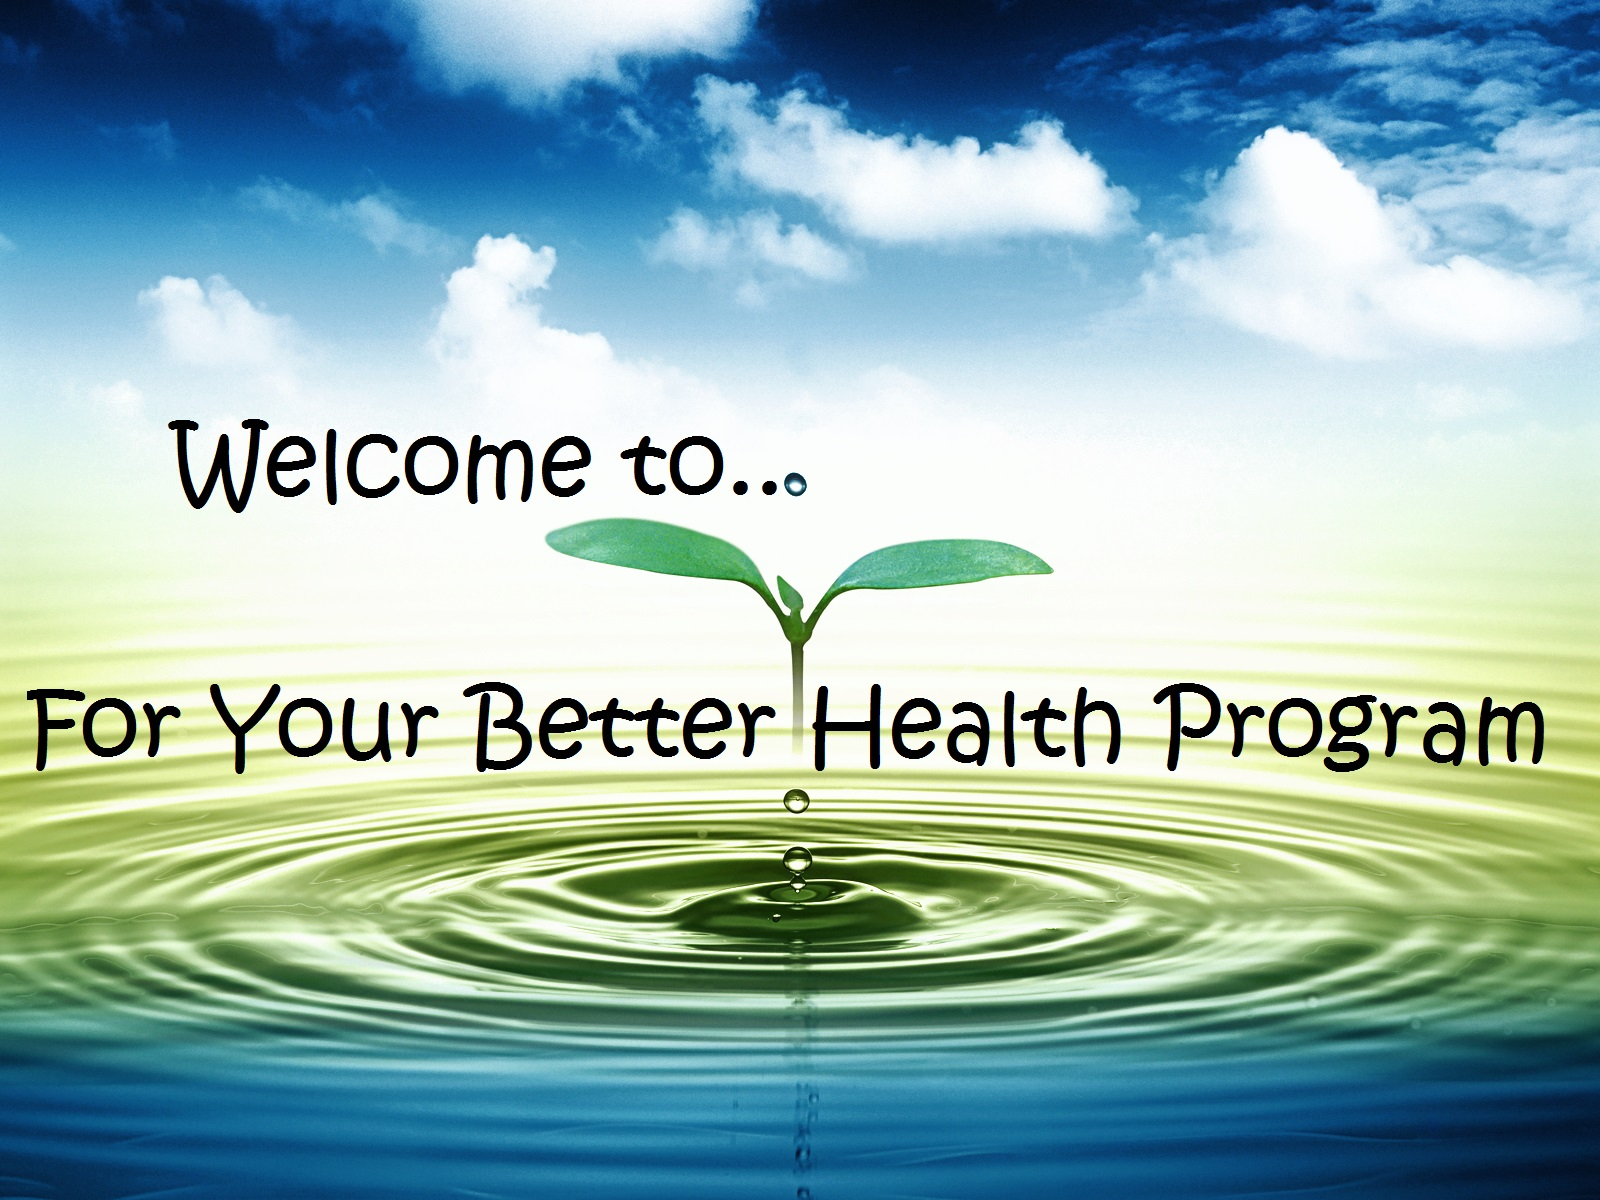 For Your Better Health Program Cheryl Millett